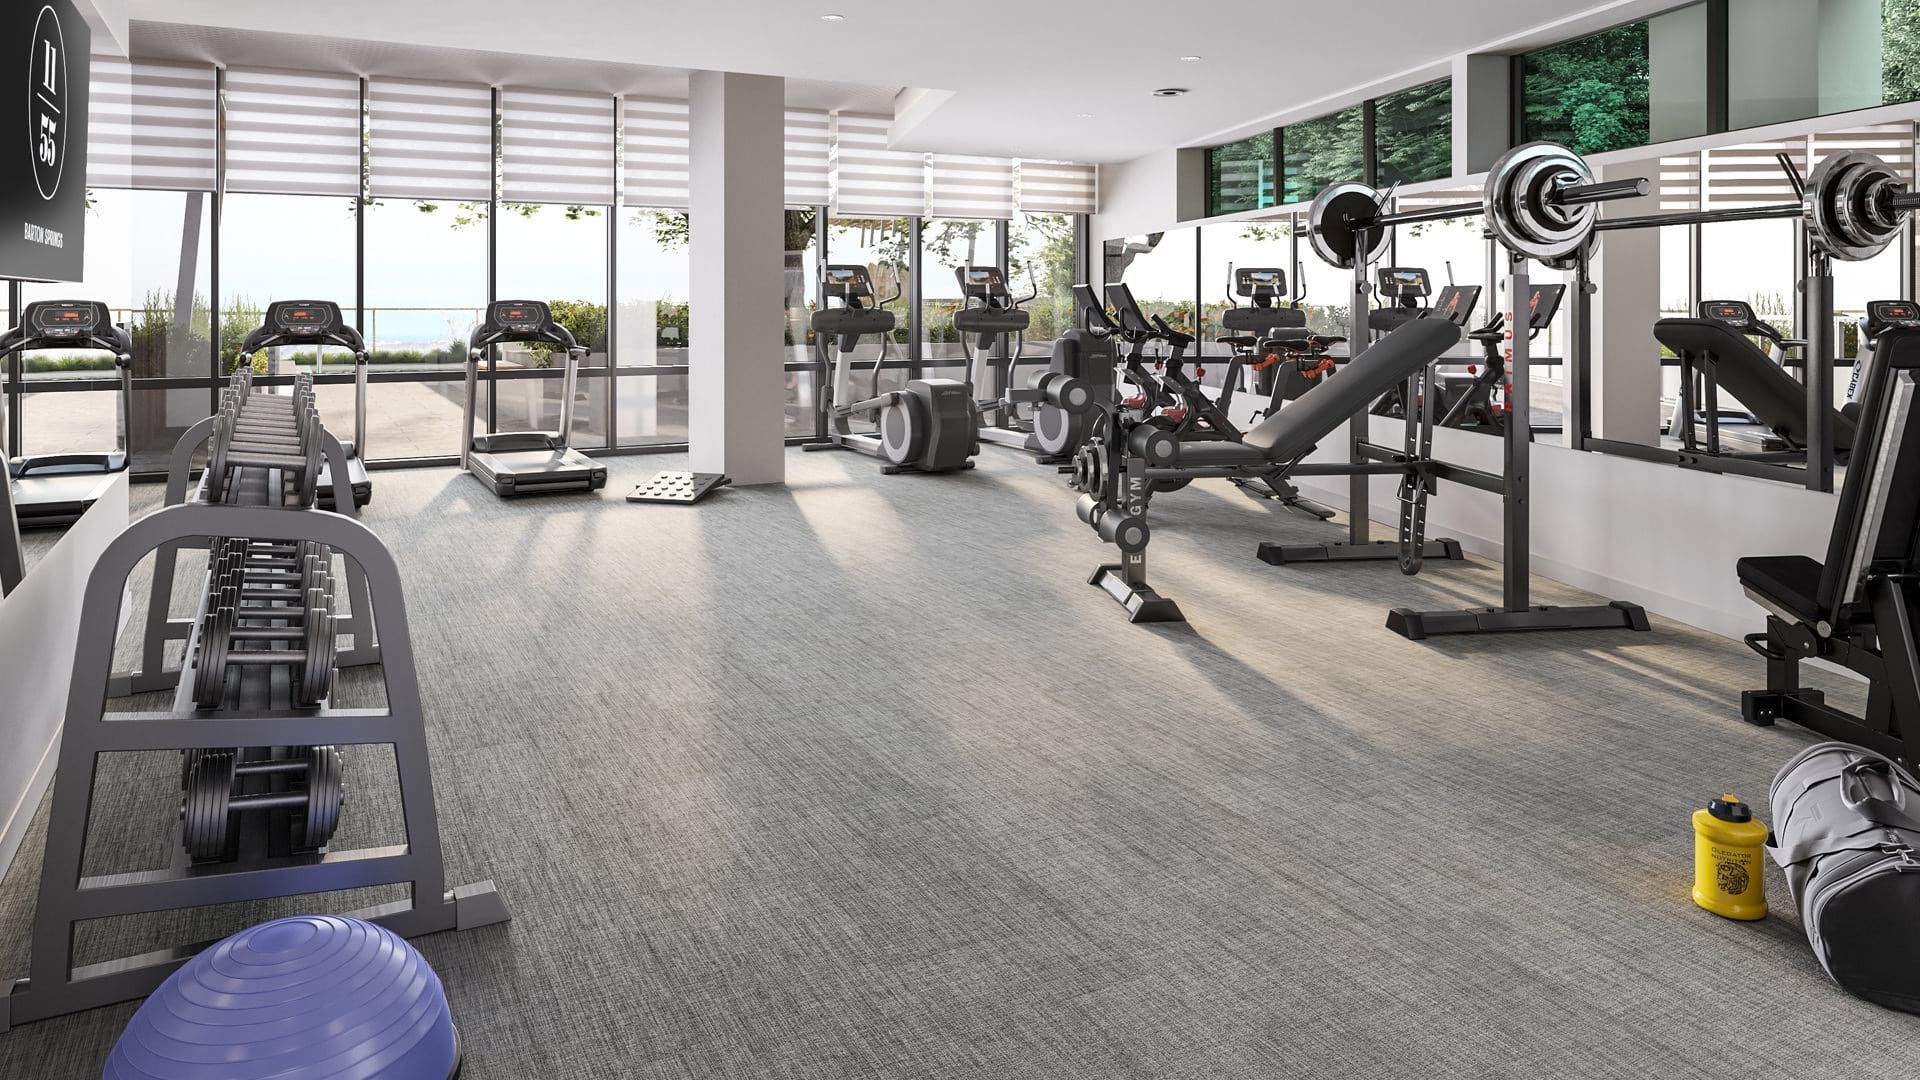 Sate-of-the-Art Fitness Center with a Wide Variety of Equipment